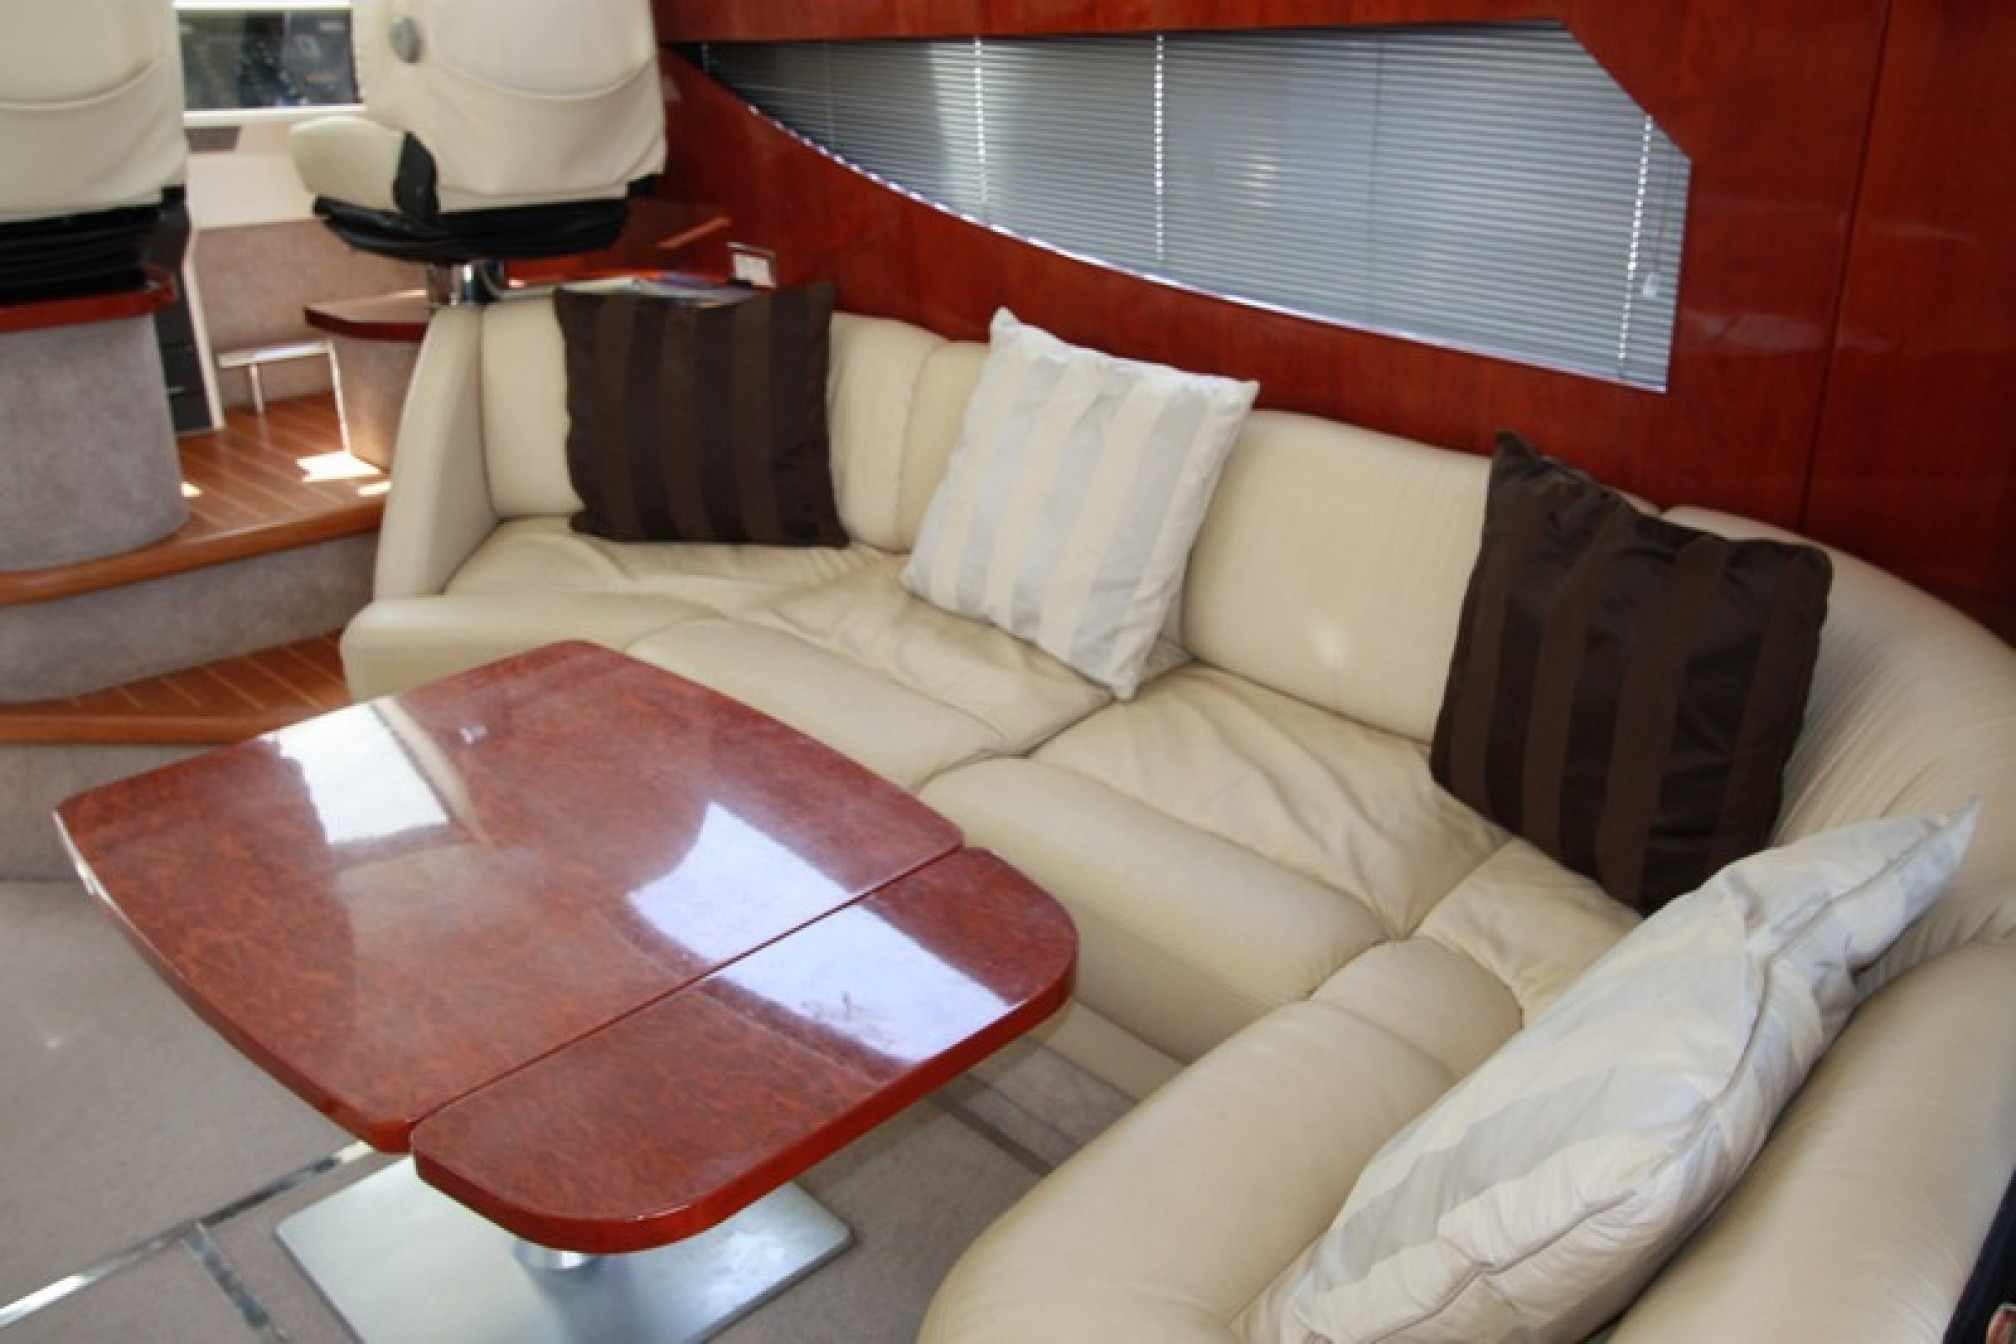 Fairline Phantom 46 yacht charter salon